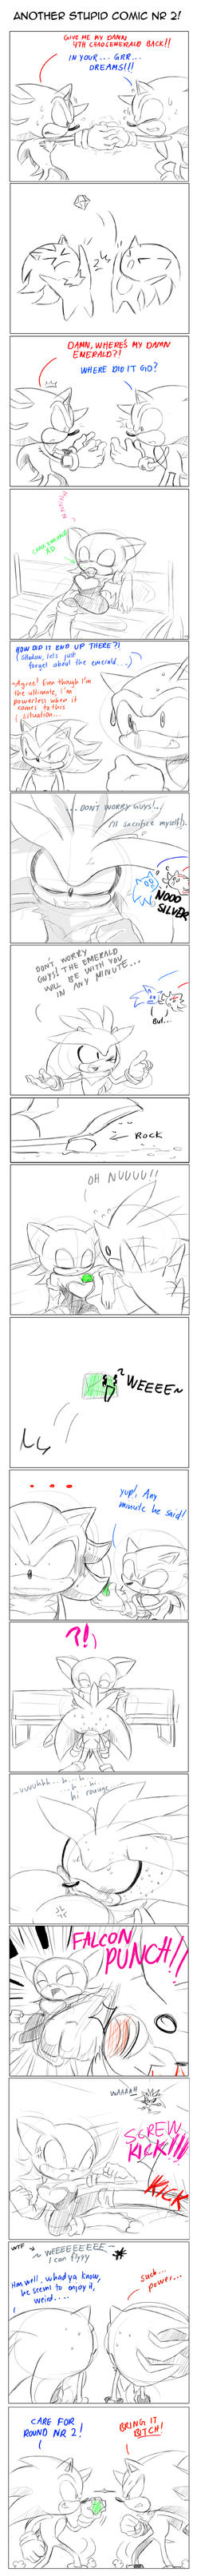 Another stupid comic nr 2 :O by missyuna